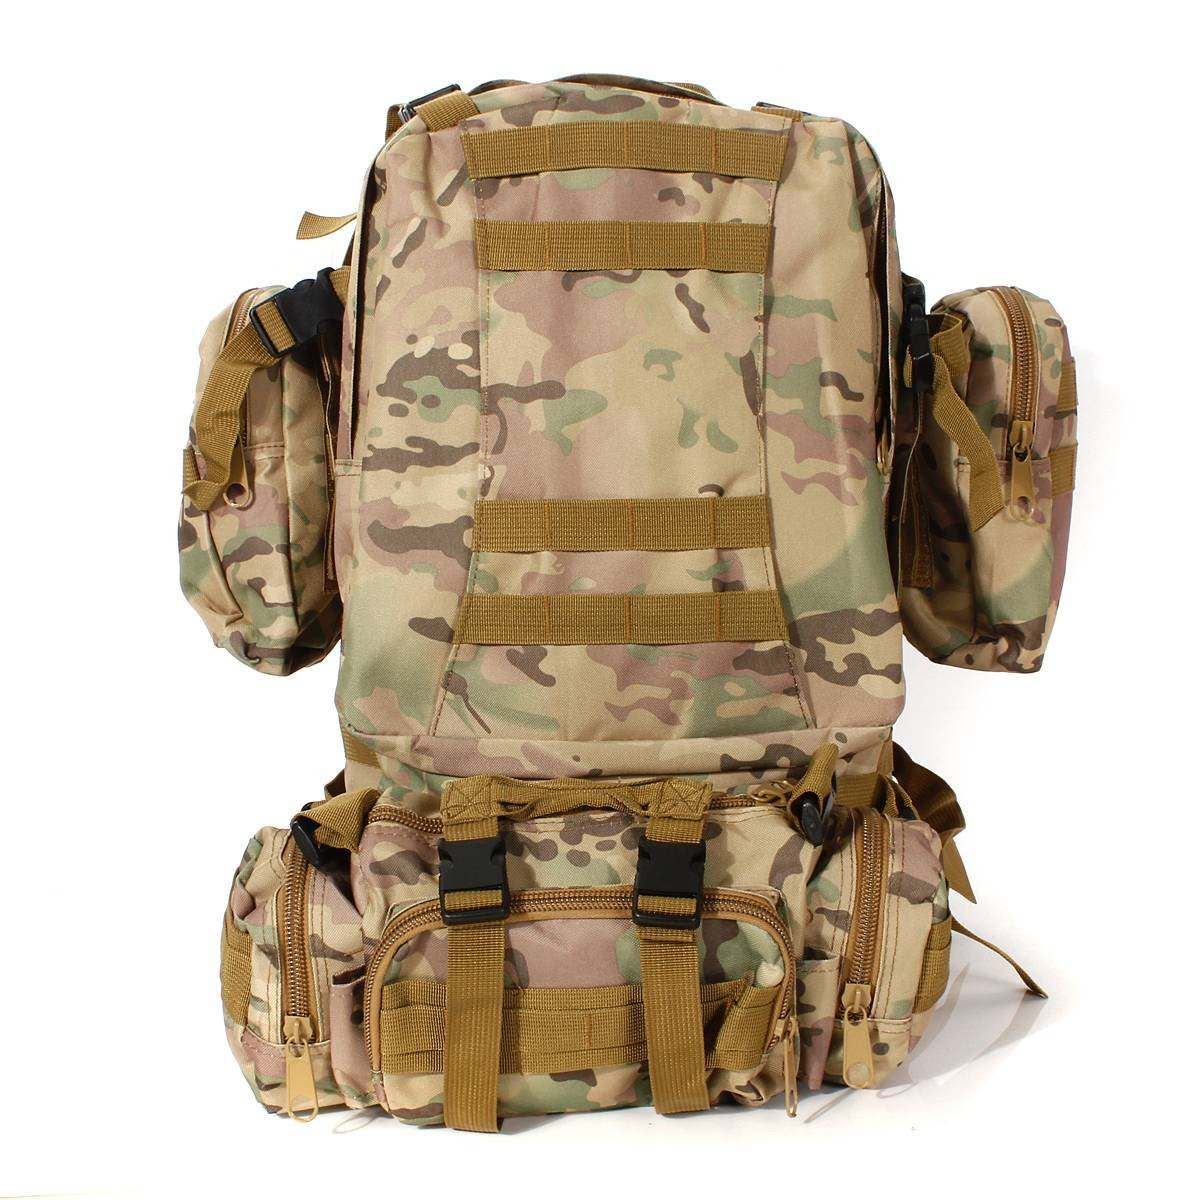 CAMTOA 50L Tactical Backpack Outdoor 50L 3D Molle Tactical Military Rucksack